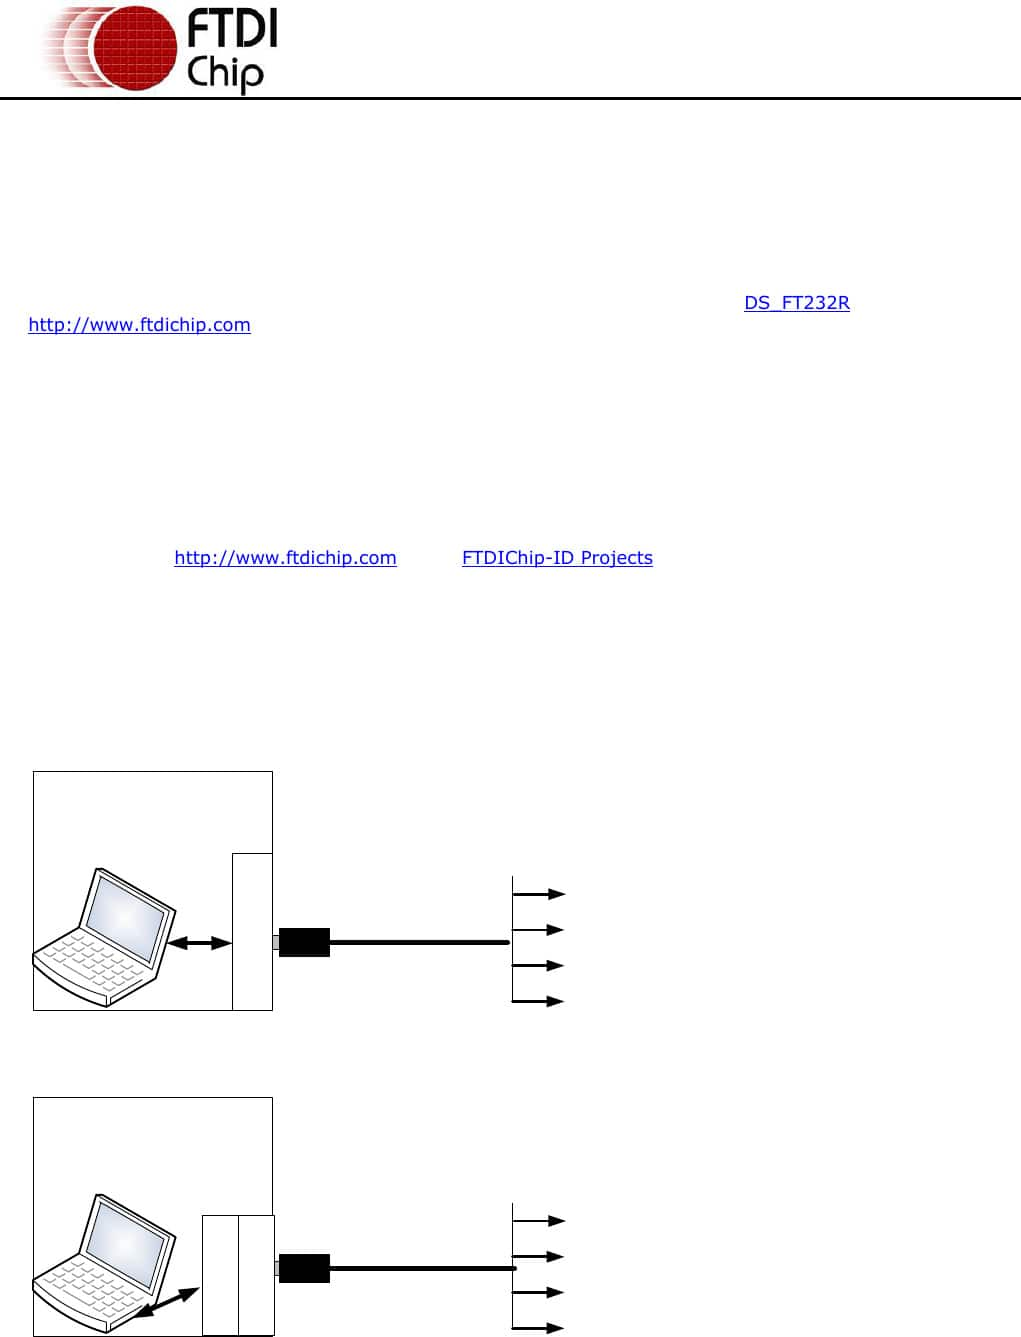 USB to RS232 Datasheet - FTDI | DigiKey Rs Access Control Wiring Diagram on